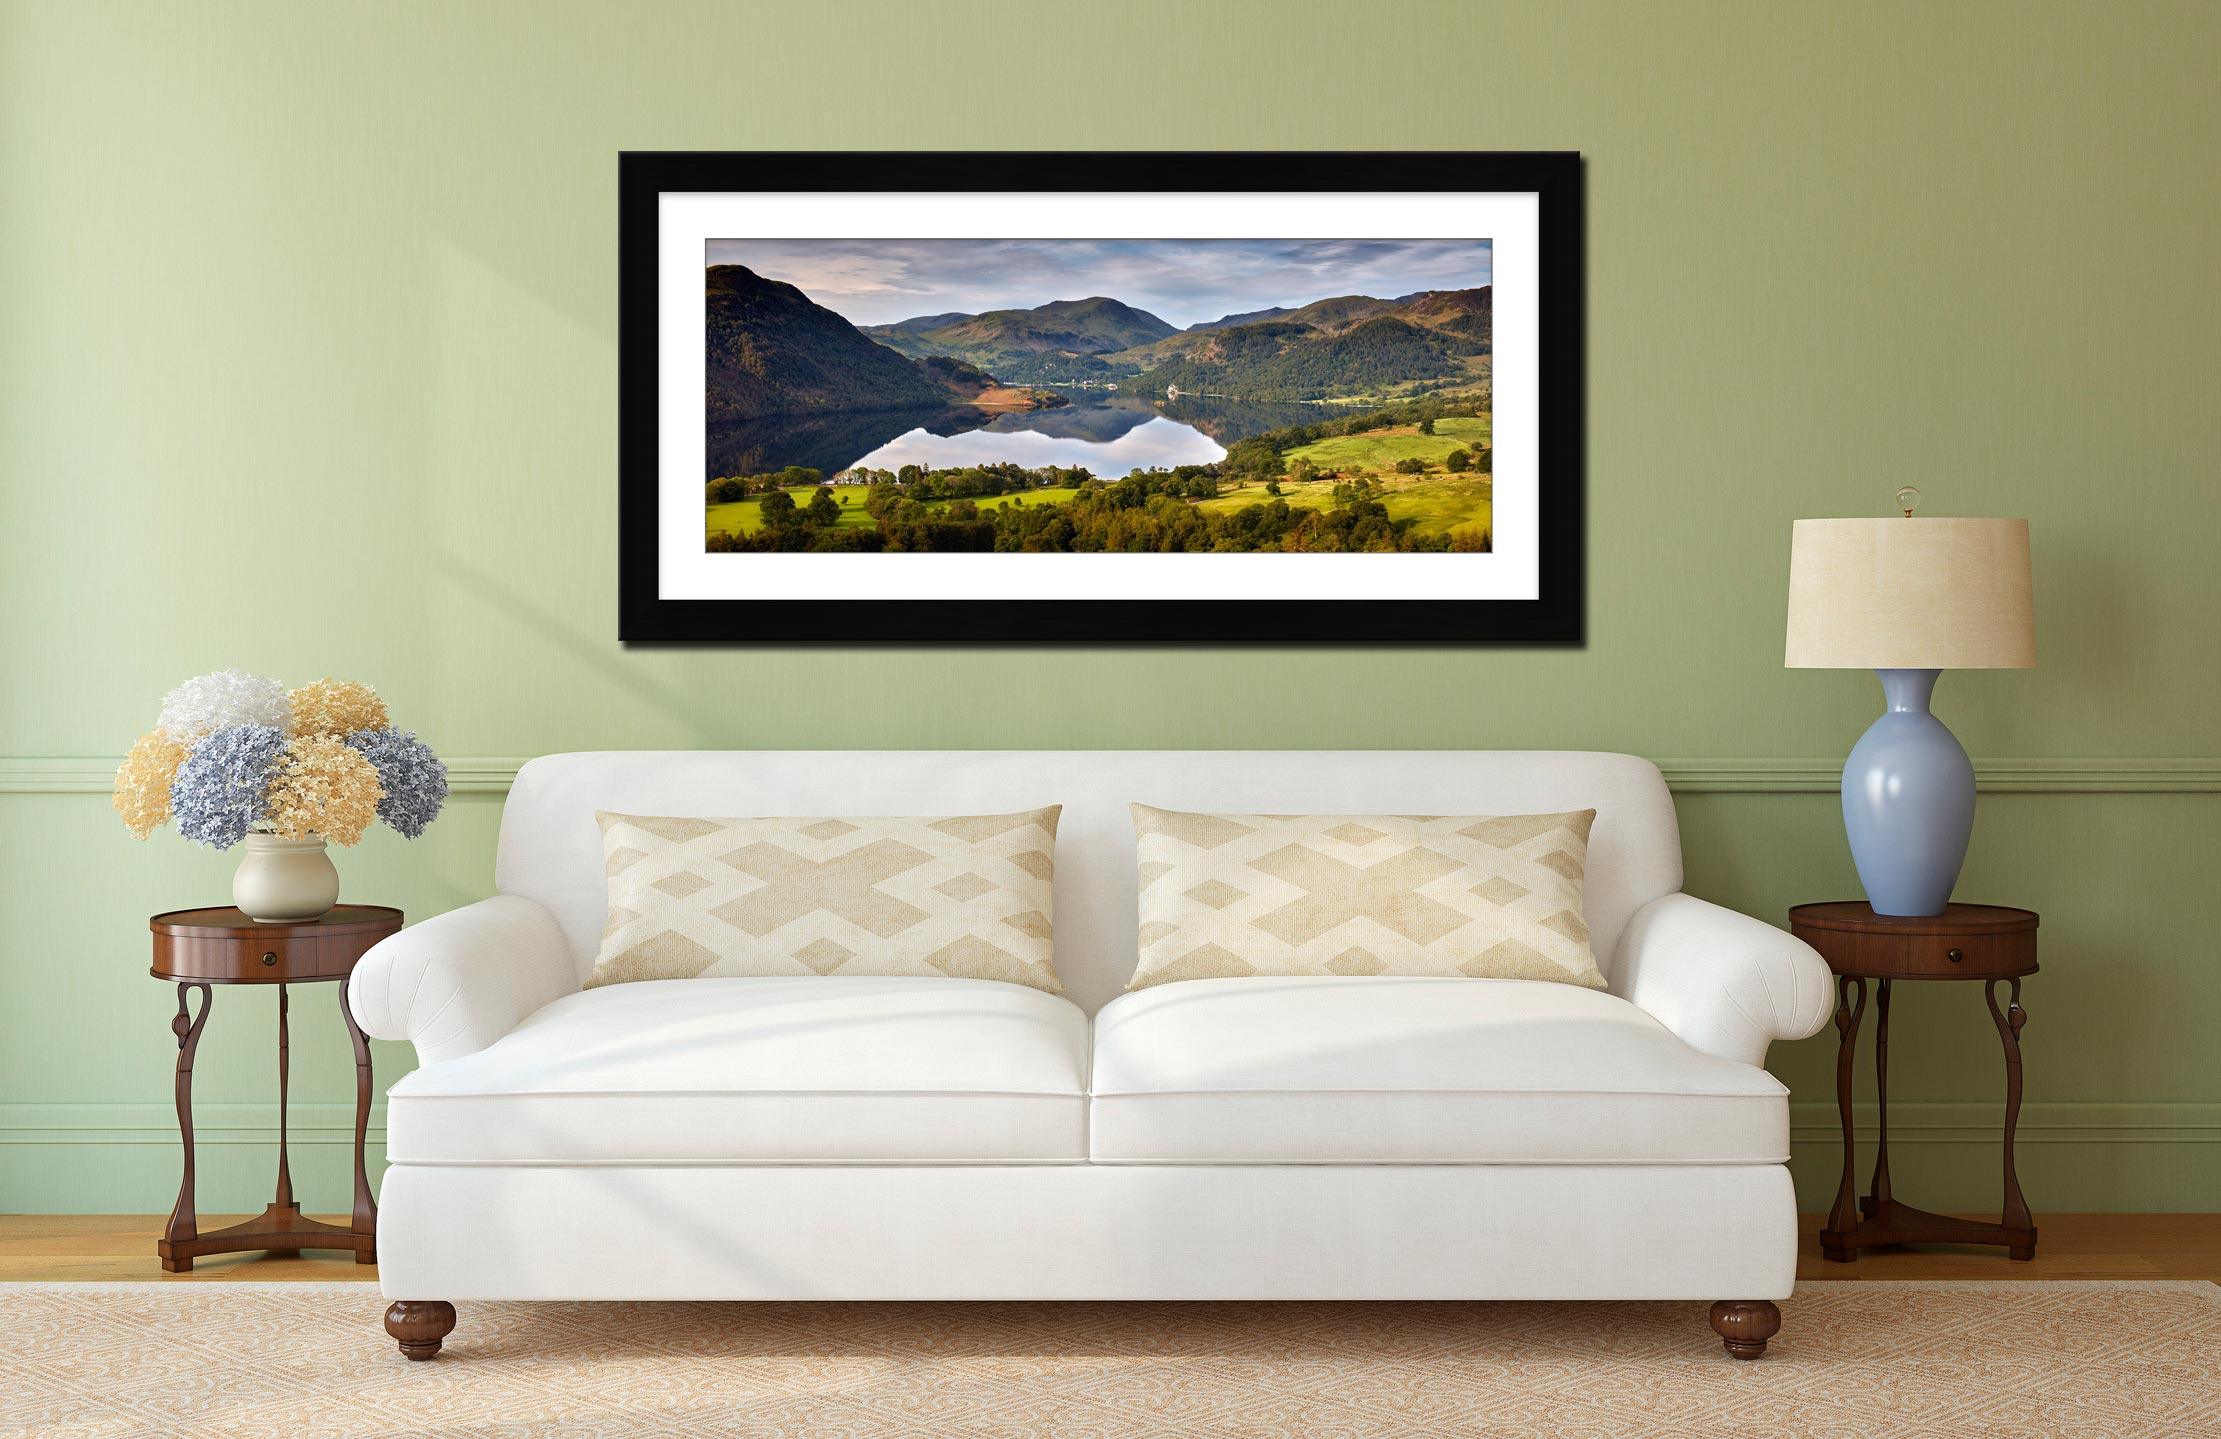 Ullswater Morning Reflections - Framed Print with Mount on Wall